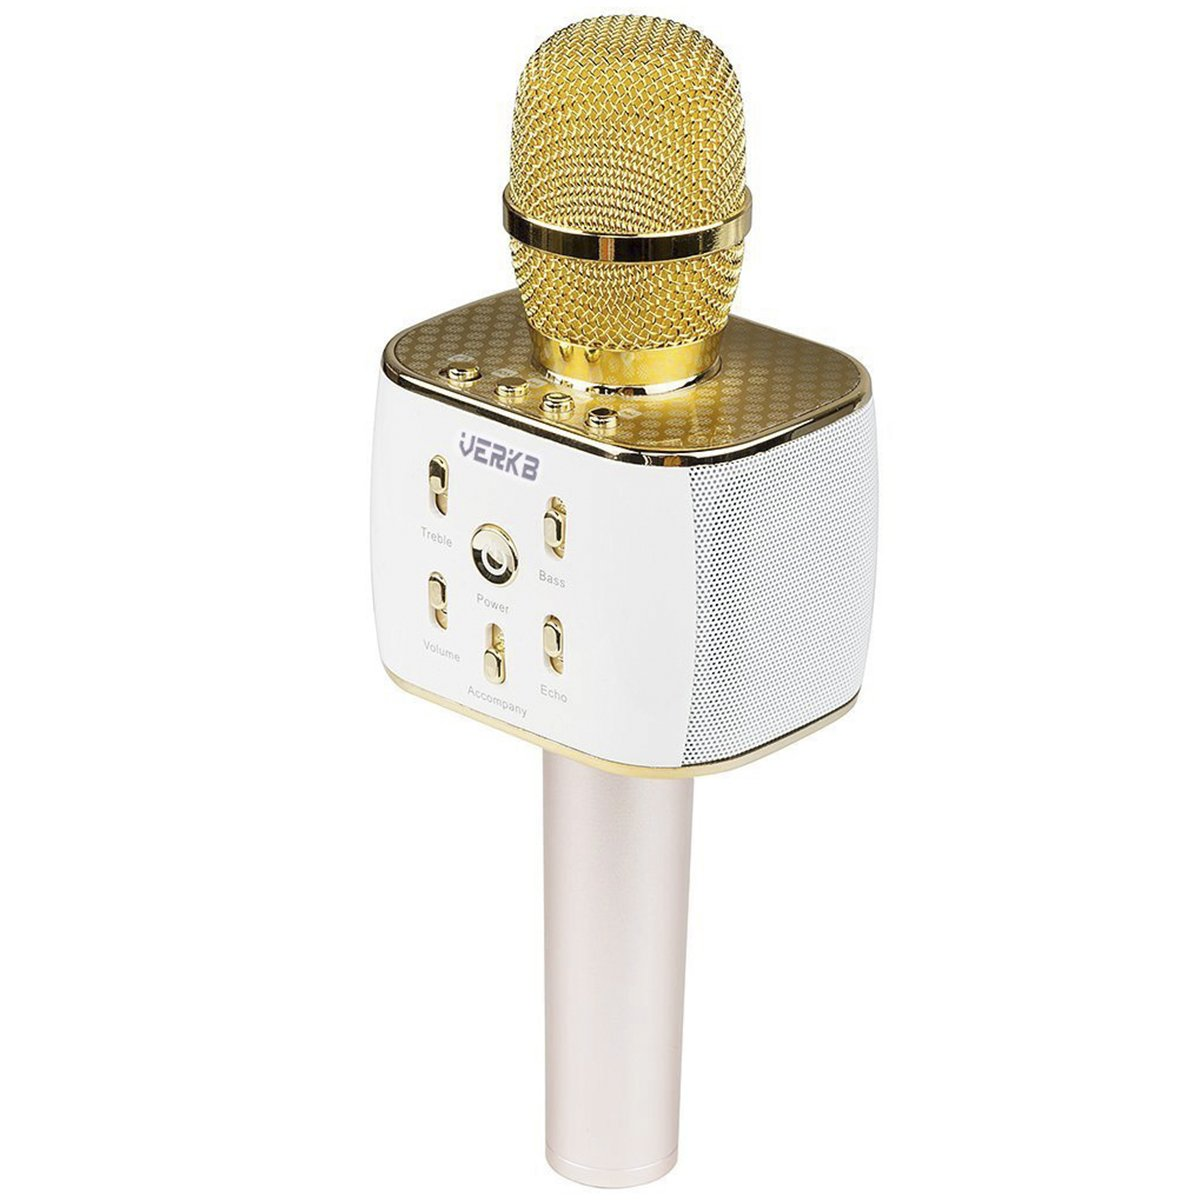 [Upgraded] VERKB Wireless Karaoke Microphone with Speaker Pro, Easter Gift Idea for Kids, 3-in-1 Portable Bluetooth KTV Karaoke Machine for Apple Android Smartphone or Pc (Light Gold) VBBT004ALG